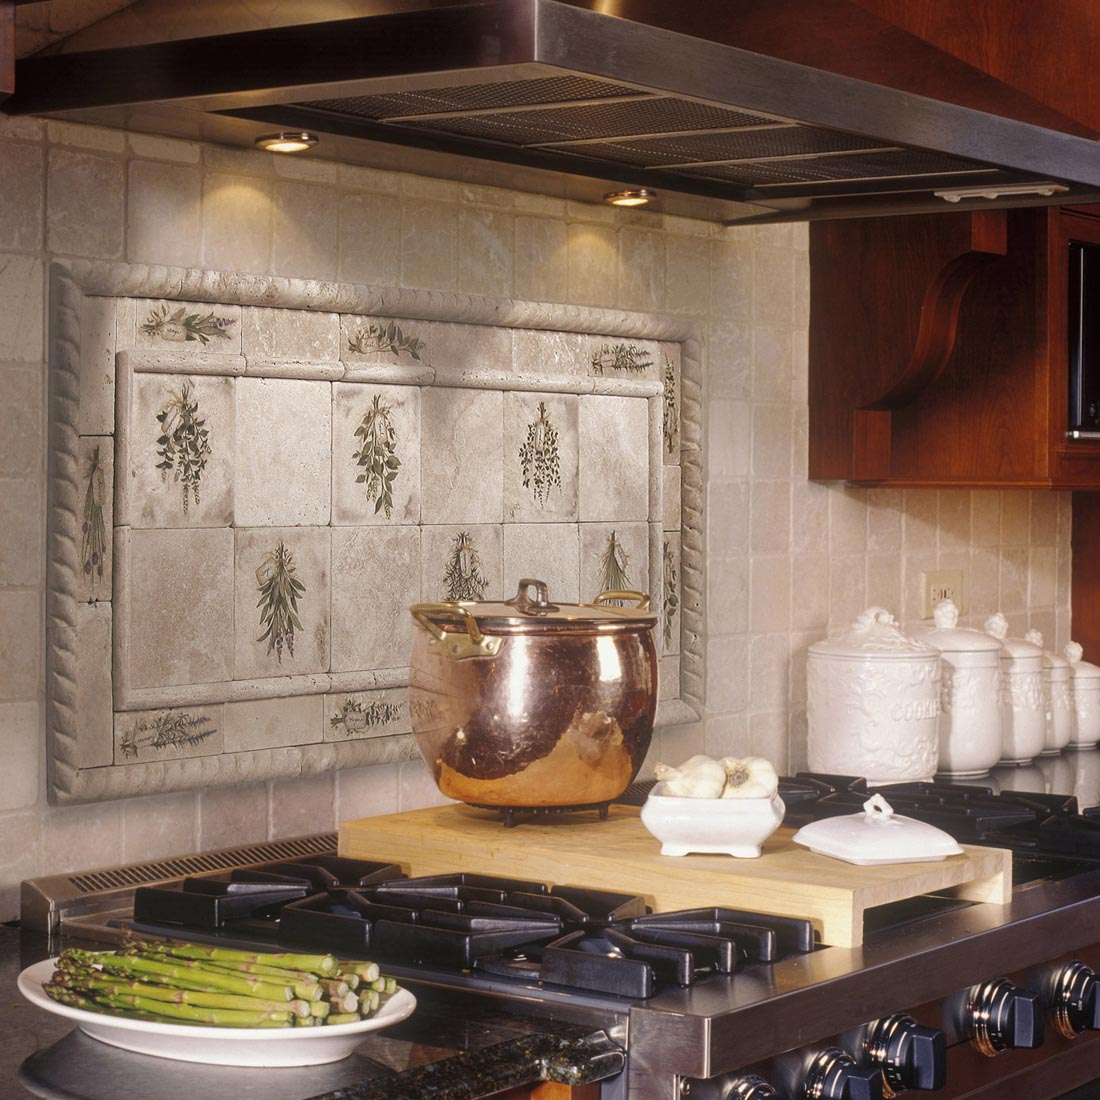 Kitchen Design And Backsplash Make The Kitchen Backsplash More Beautiful